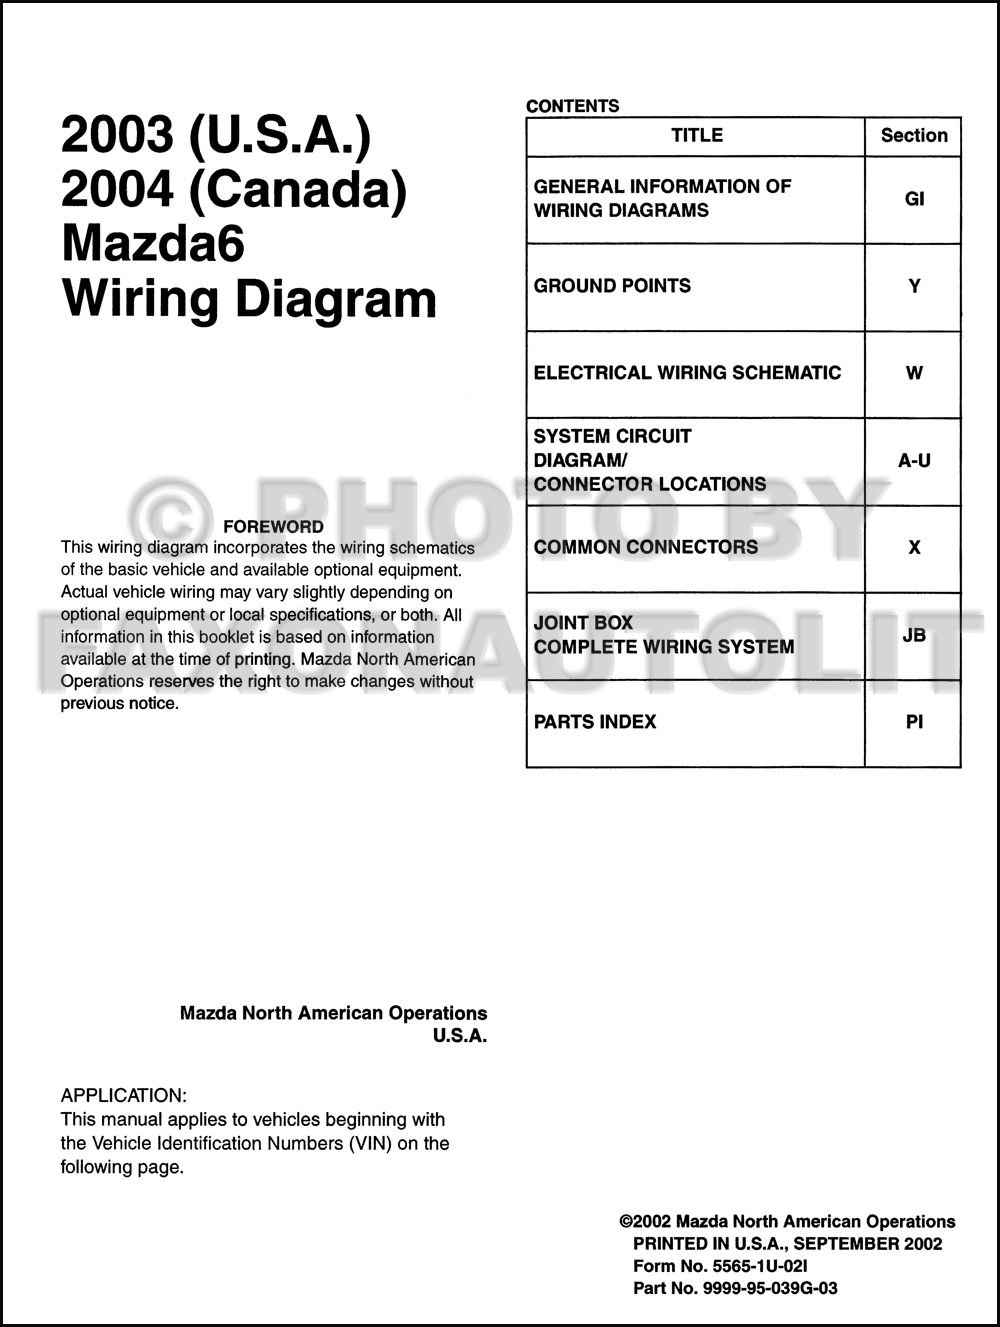 mazda 6 wiring diagram manual 2004 mazda 6 wiring diagram 2003 mazda6 original wiring diagram (and 2004 canada mazda 6) #12